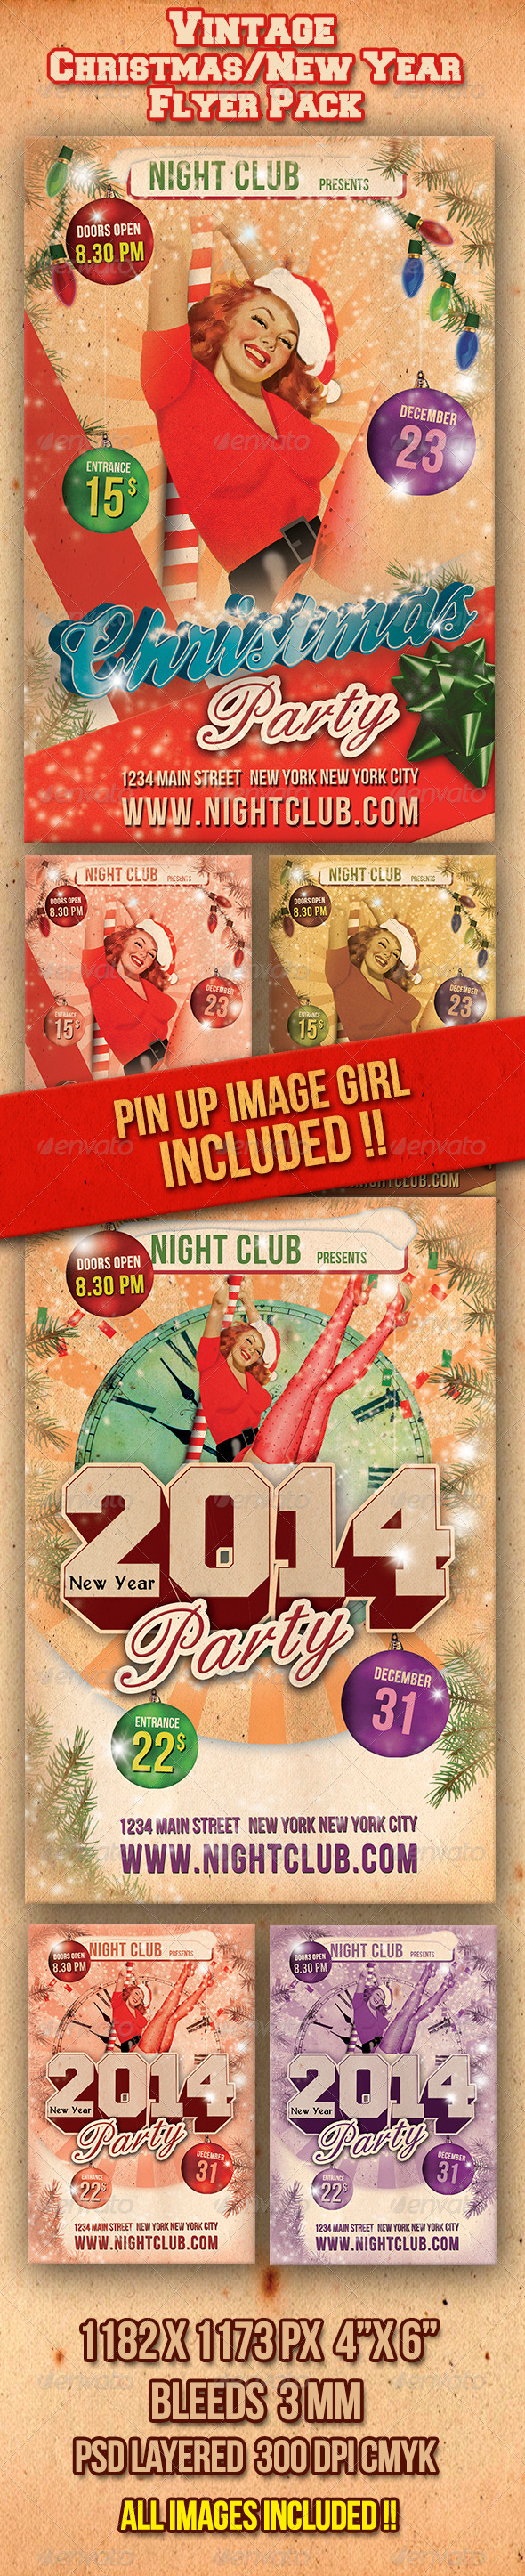 Vintage Christmas / 2012 New Year Flyers Pack - Clubs & Parties Events